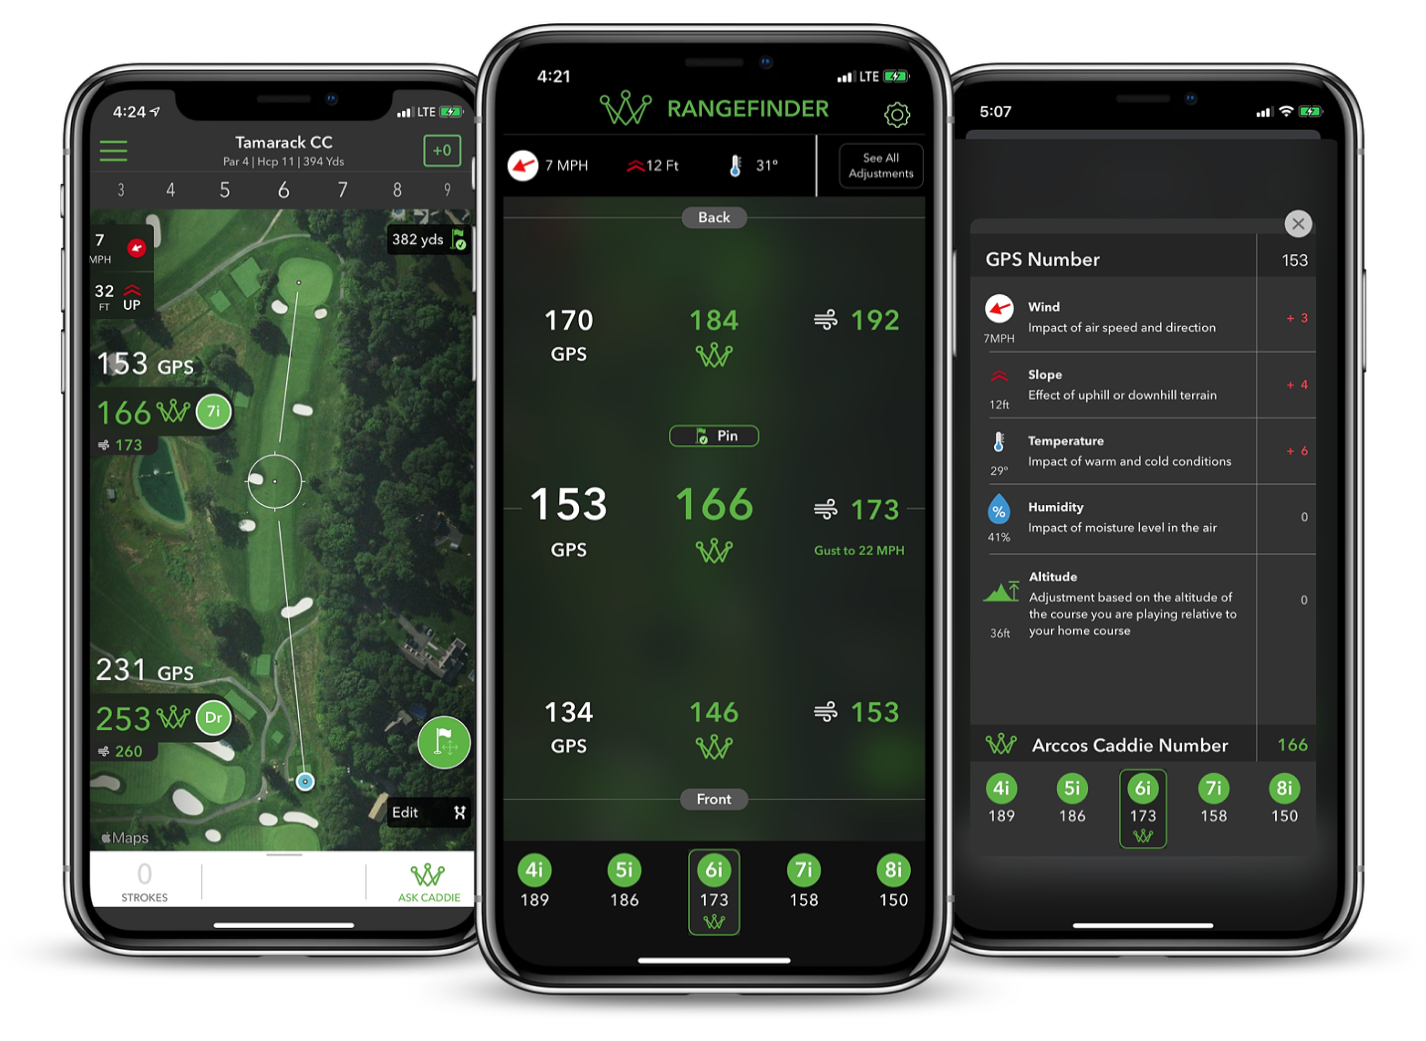 Golf's First AI-Powered GPS Rangefinder - Arccos Caddie Rangefinder Hero Image on iPhone X